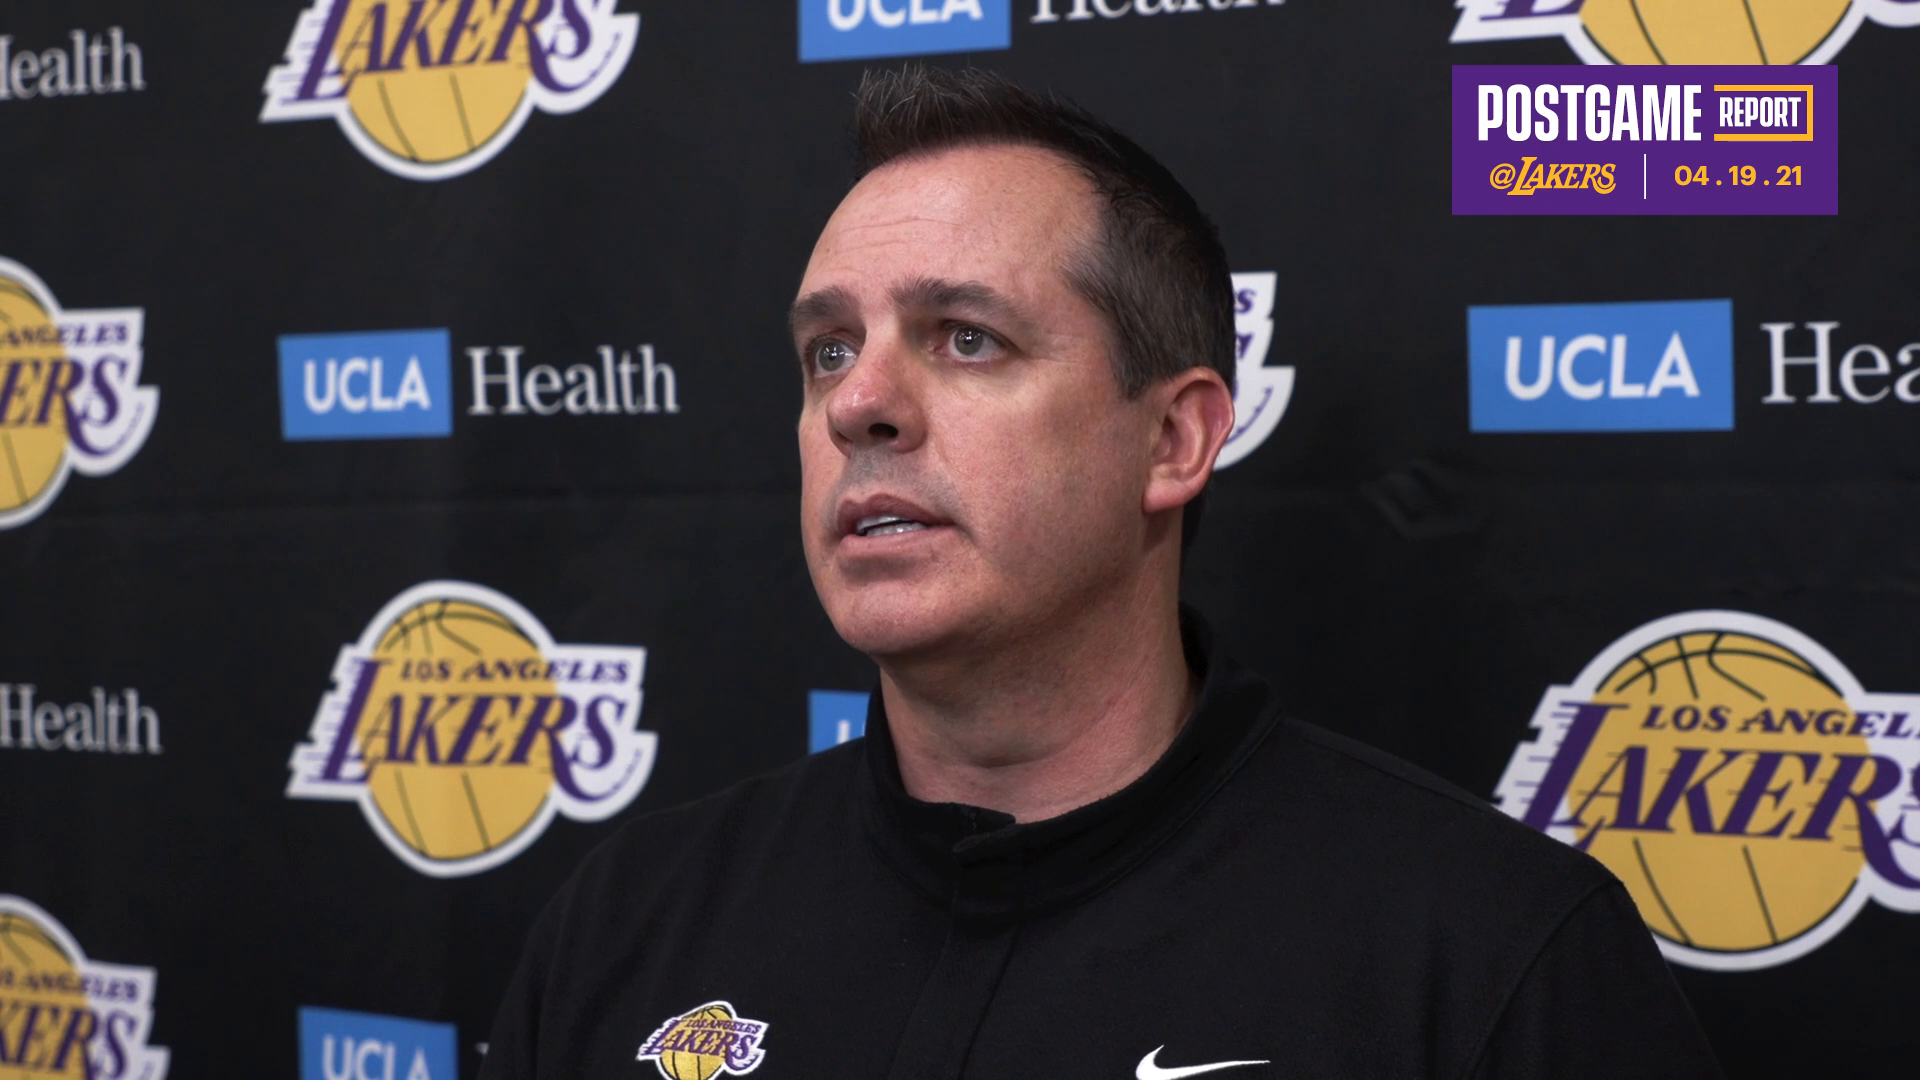 Lakers Postgame: Frank Vogel (4/19/21)